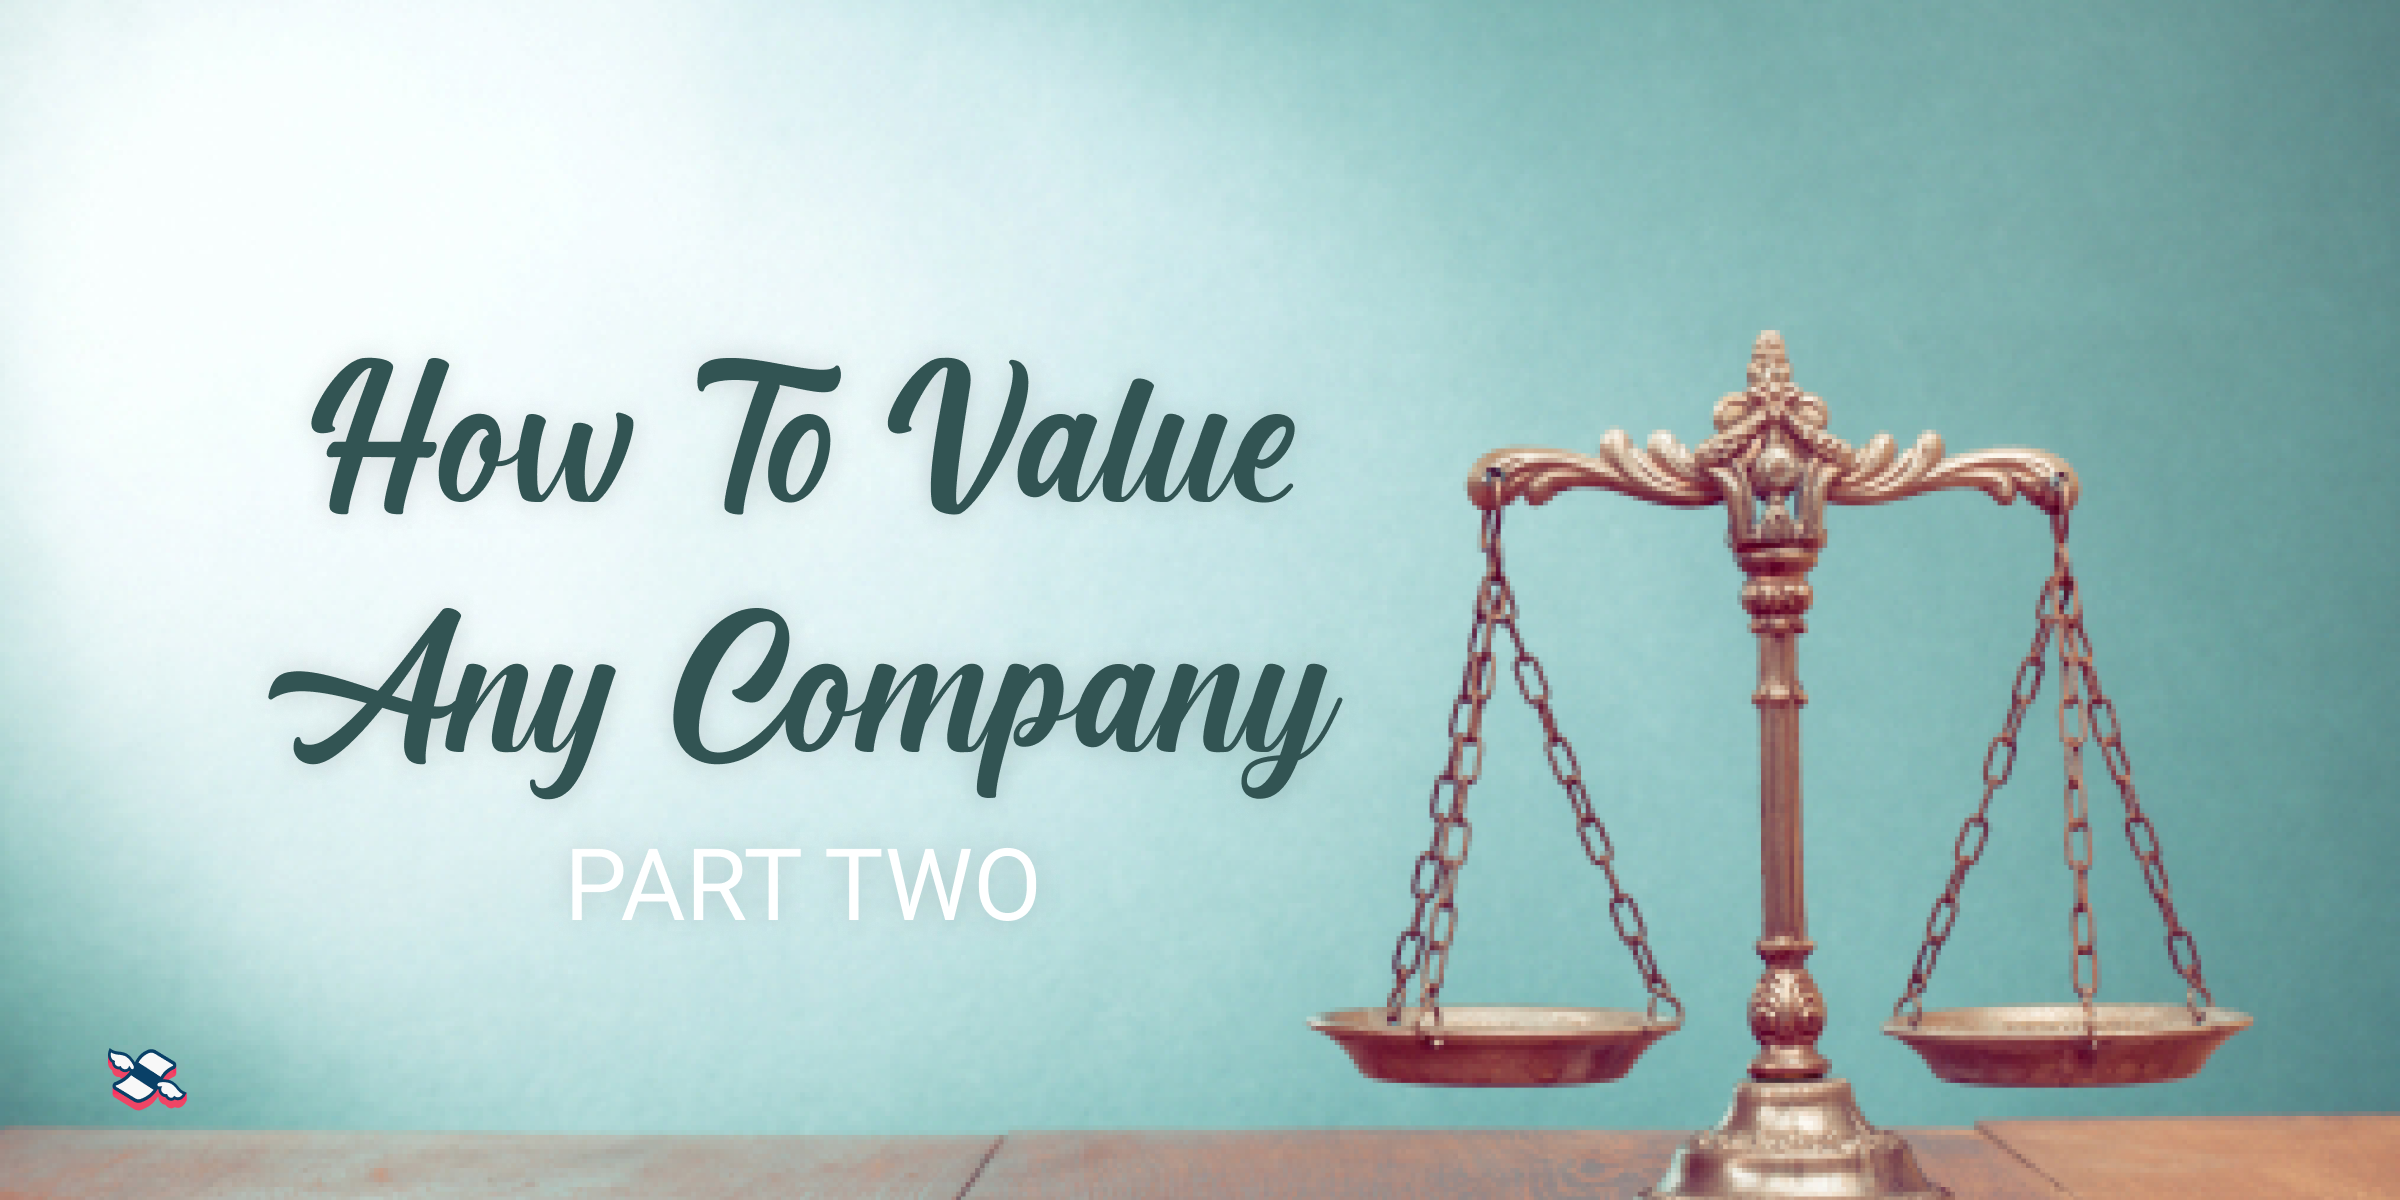 How To Value Any Company, Part Two